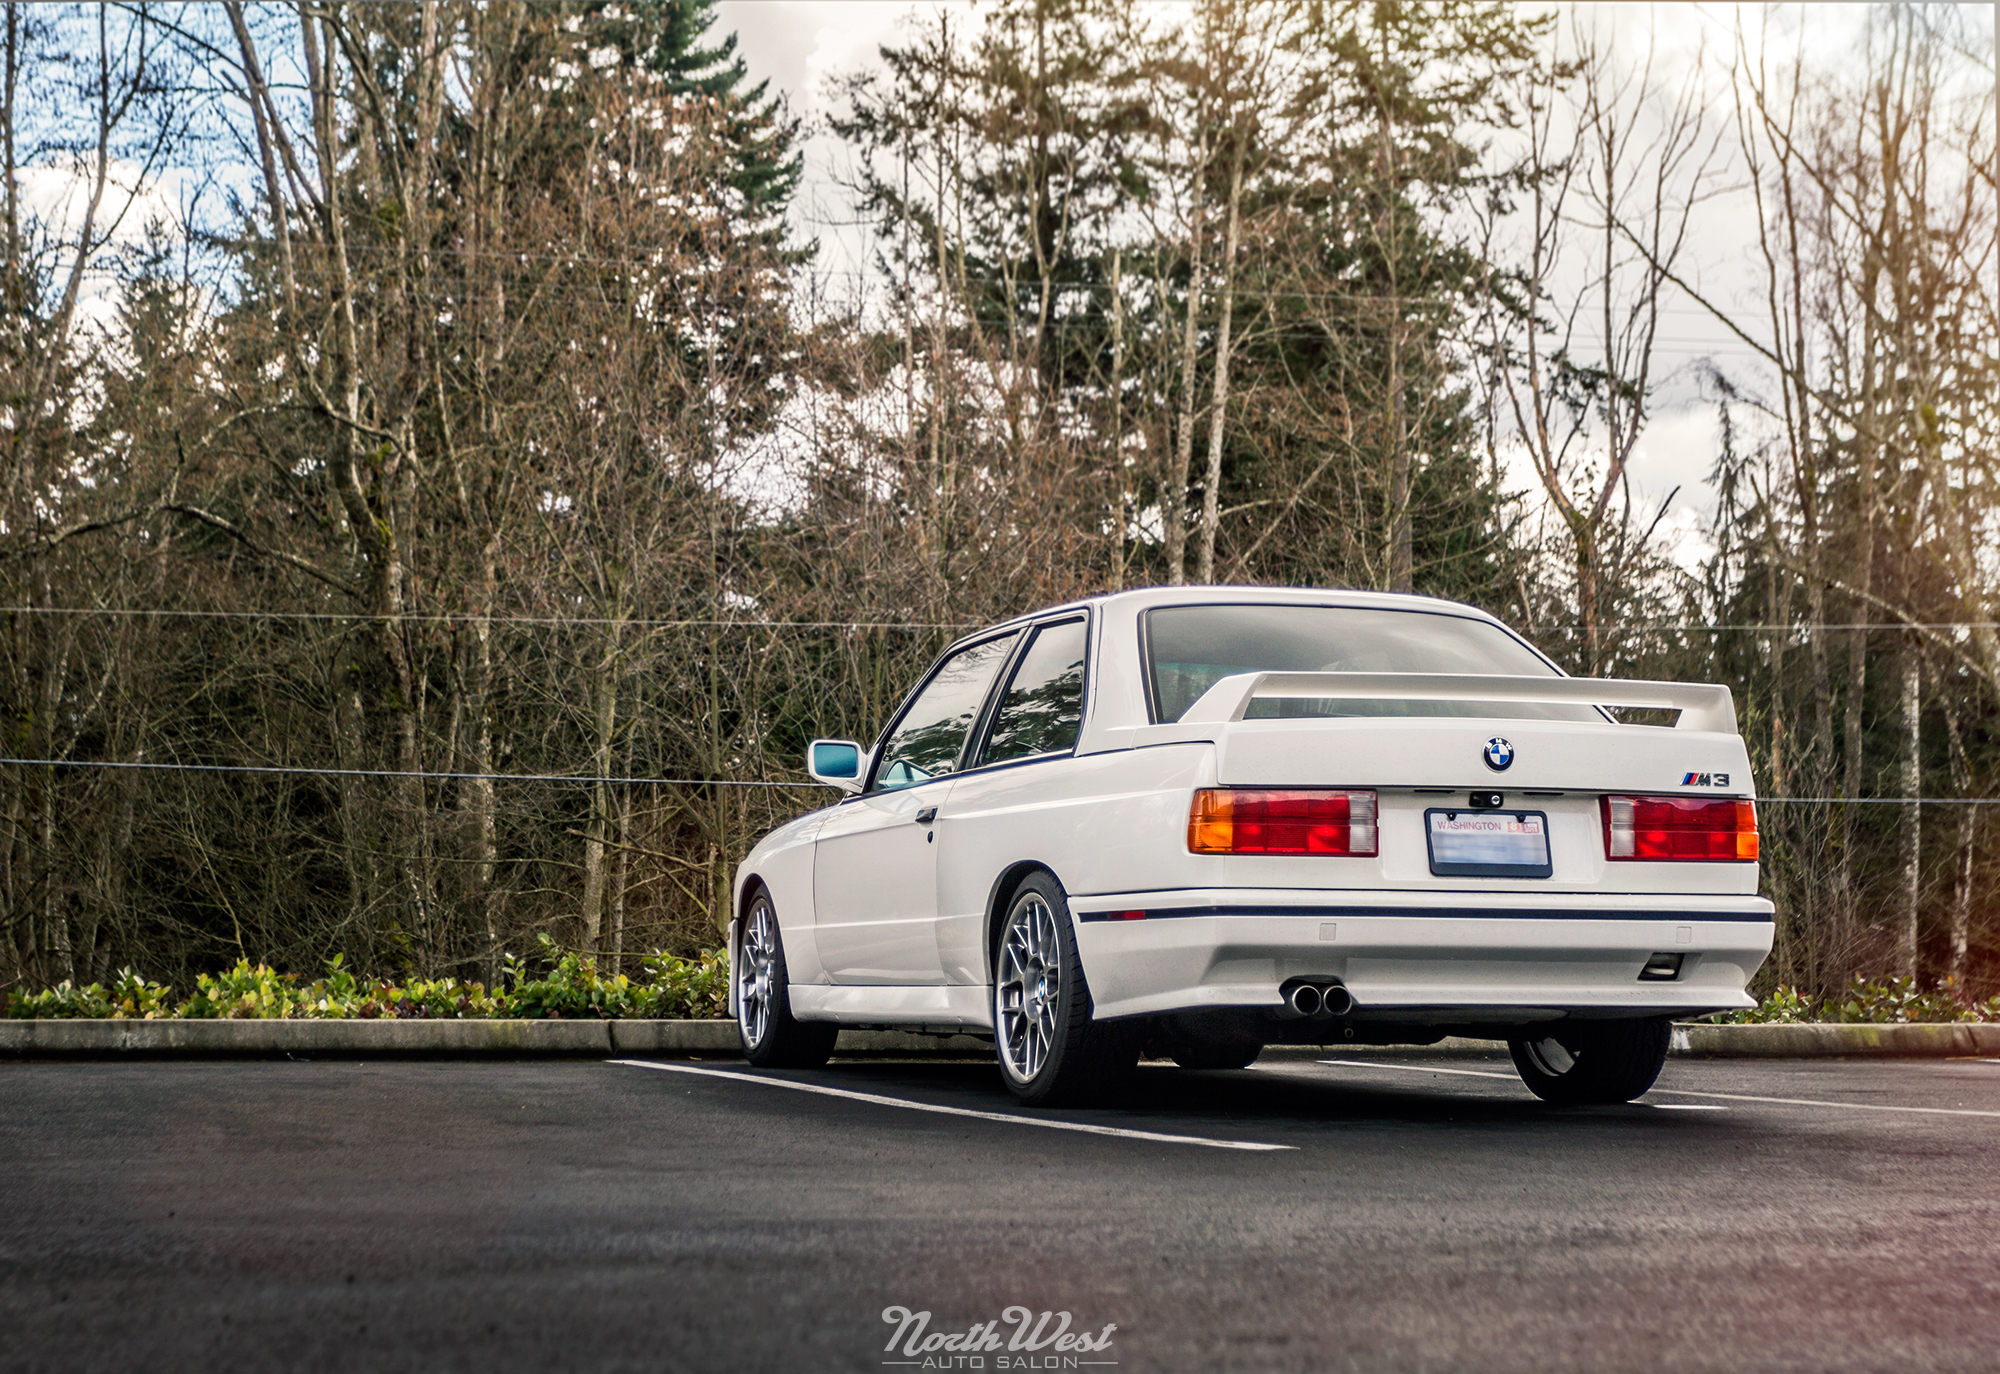 Wrapped Up Matte Silver Bmw E30 M3 With Red Accents At Nwas Northwest Auto Salon